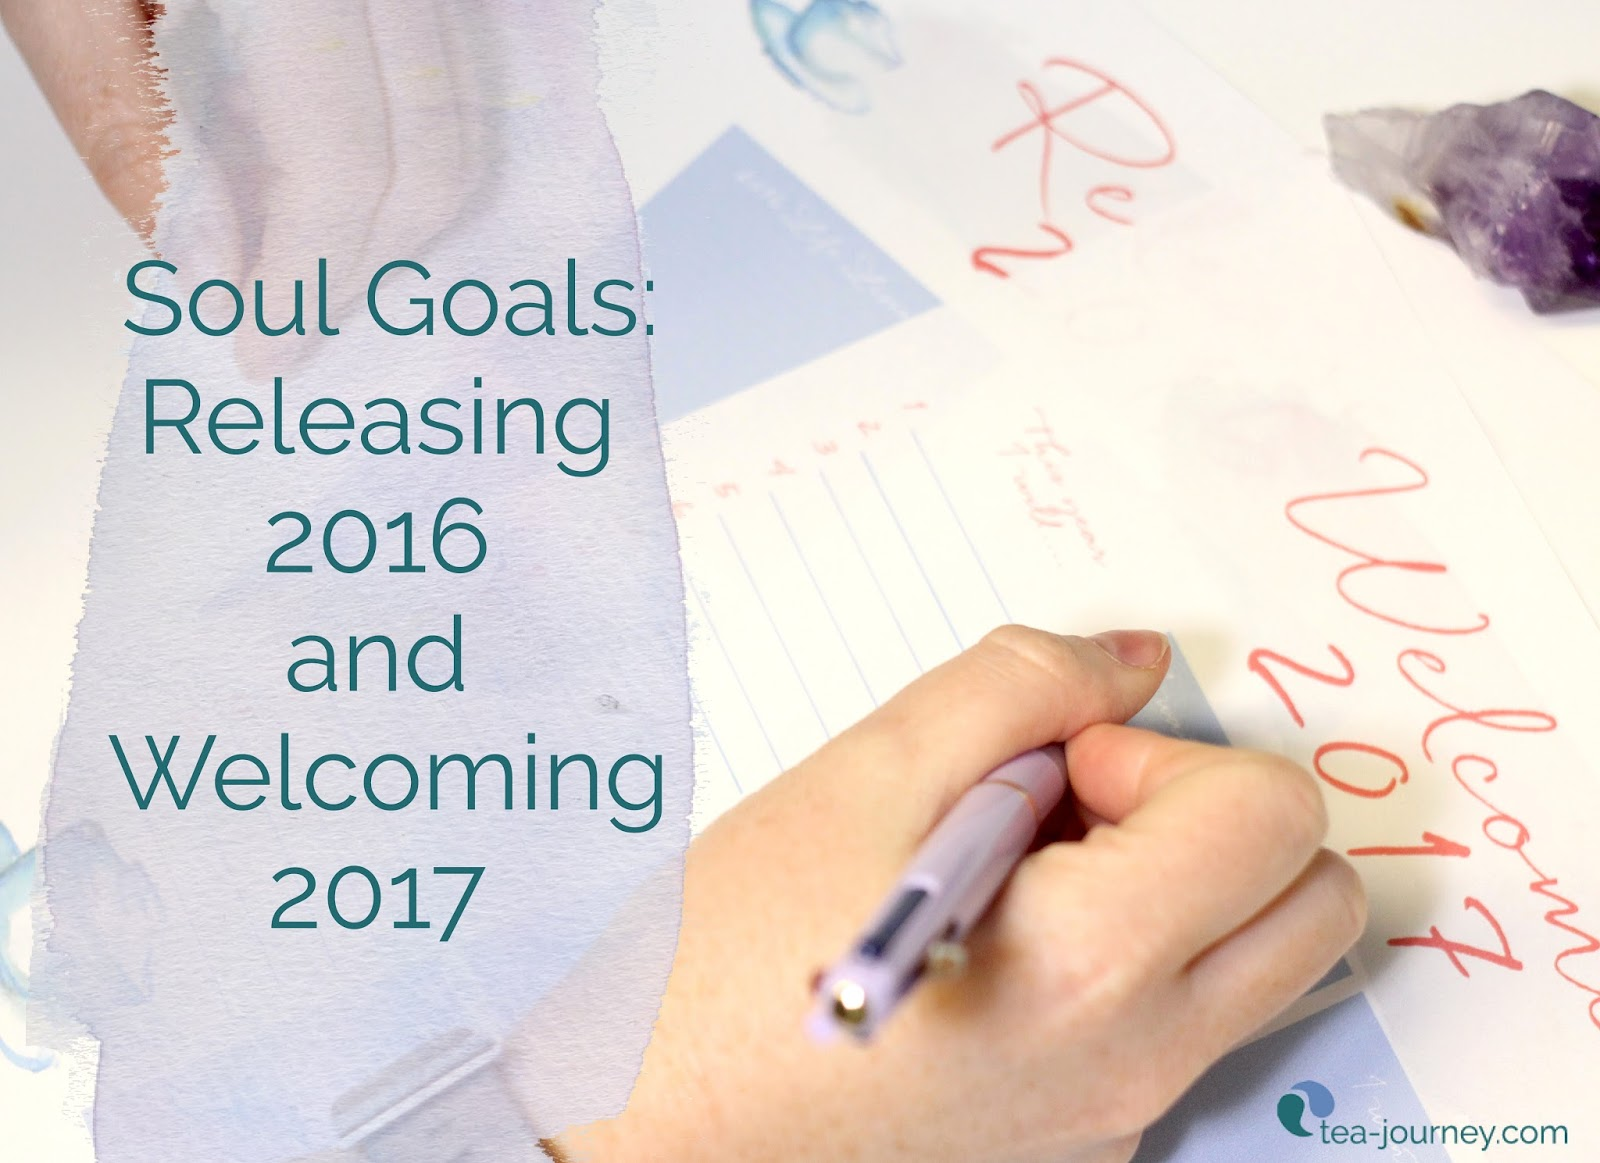 Got a few minutes before it hits midnight? Use these printable to let go of the previous year and welcome 2017 with a soulful plan to achieve your dreams.